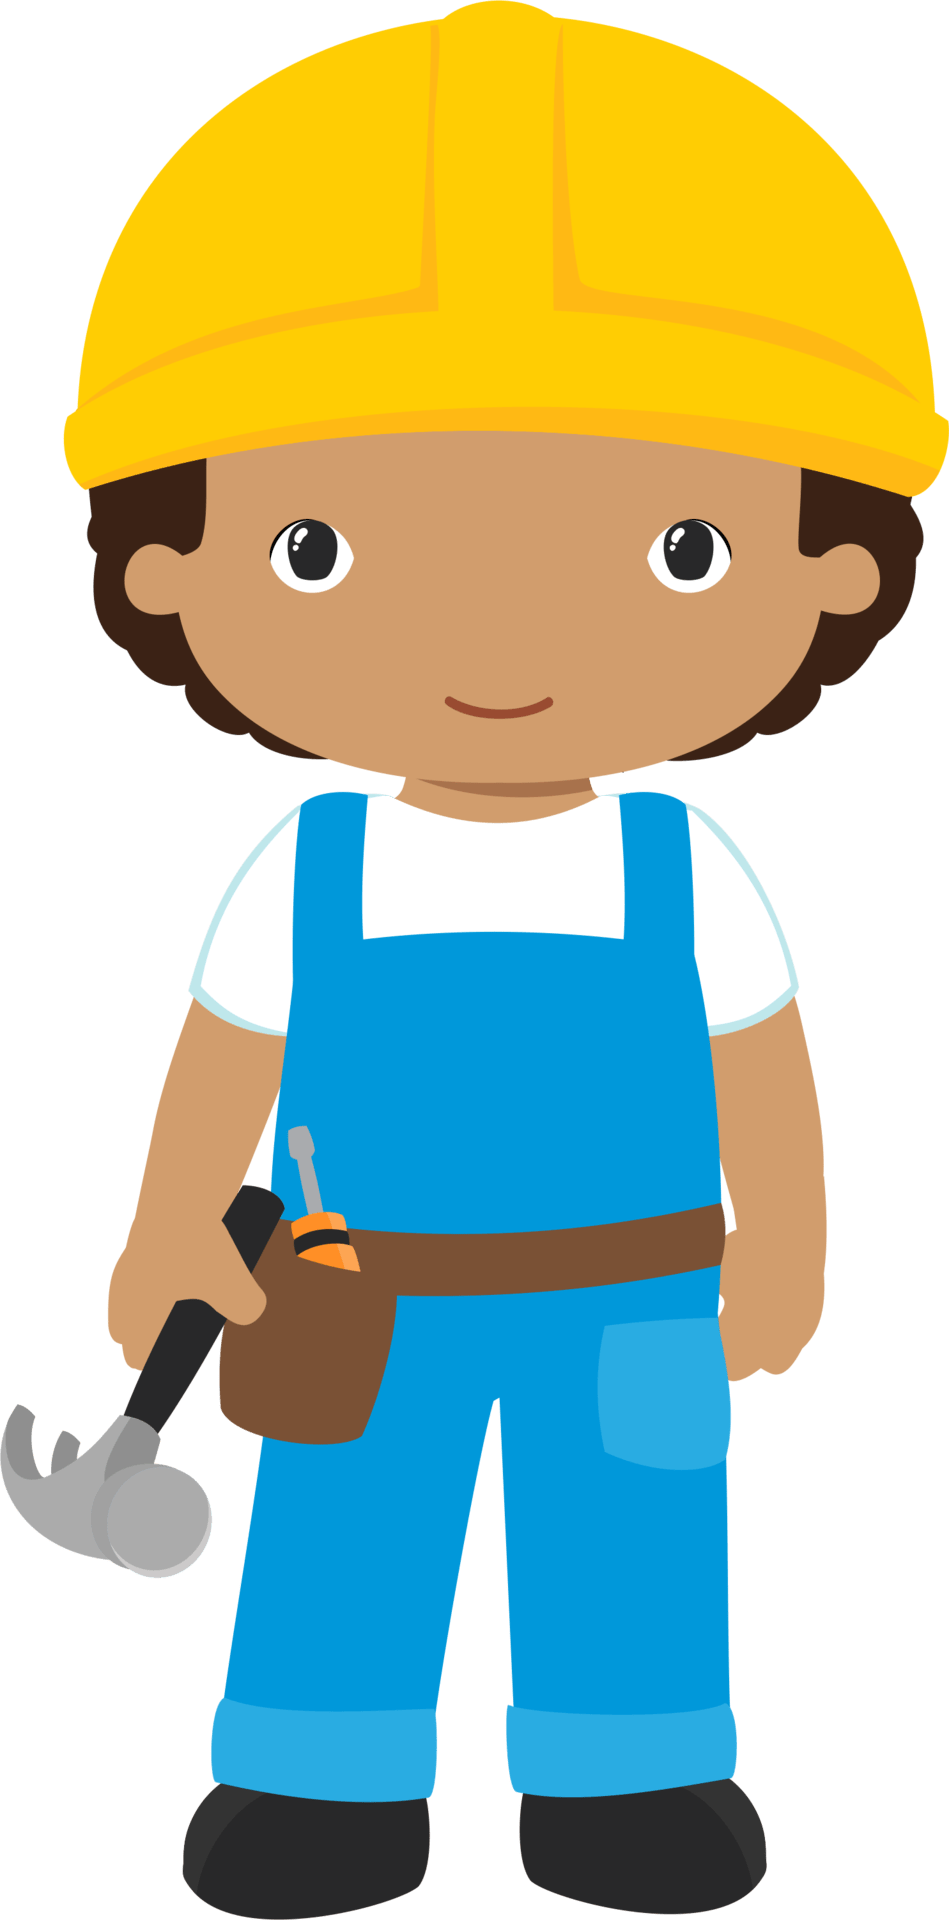 medium resolution of workers clipart community at getdrawings com